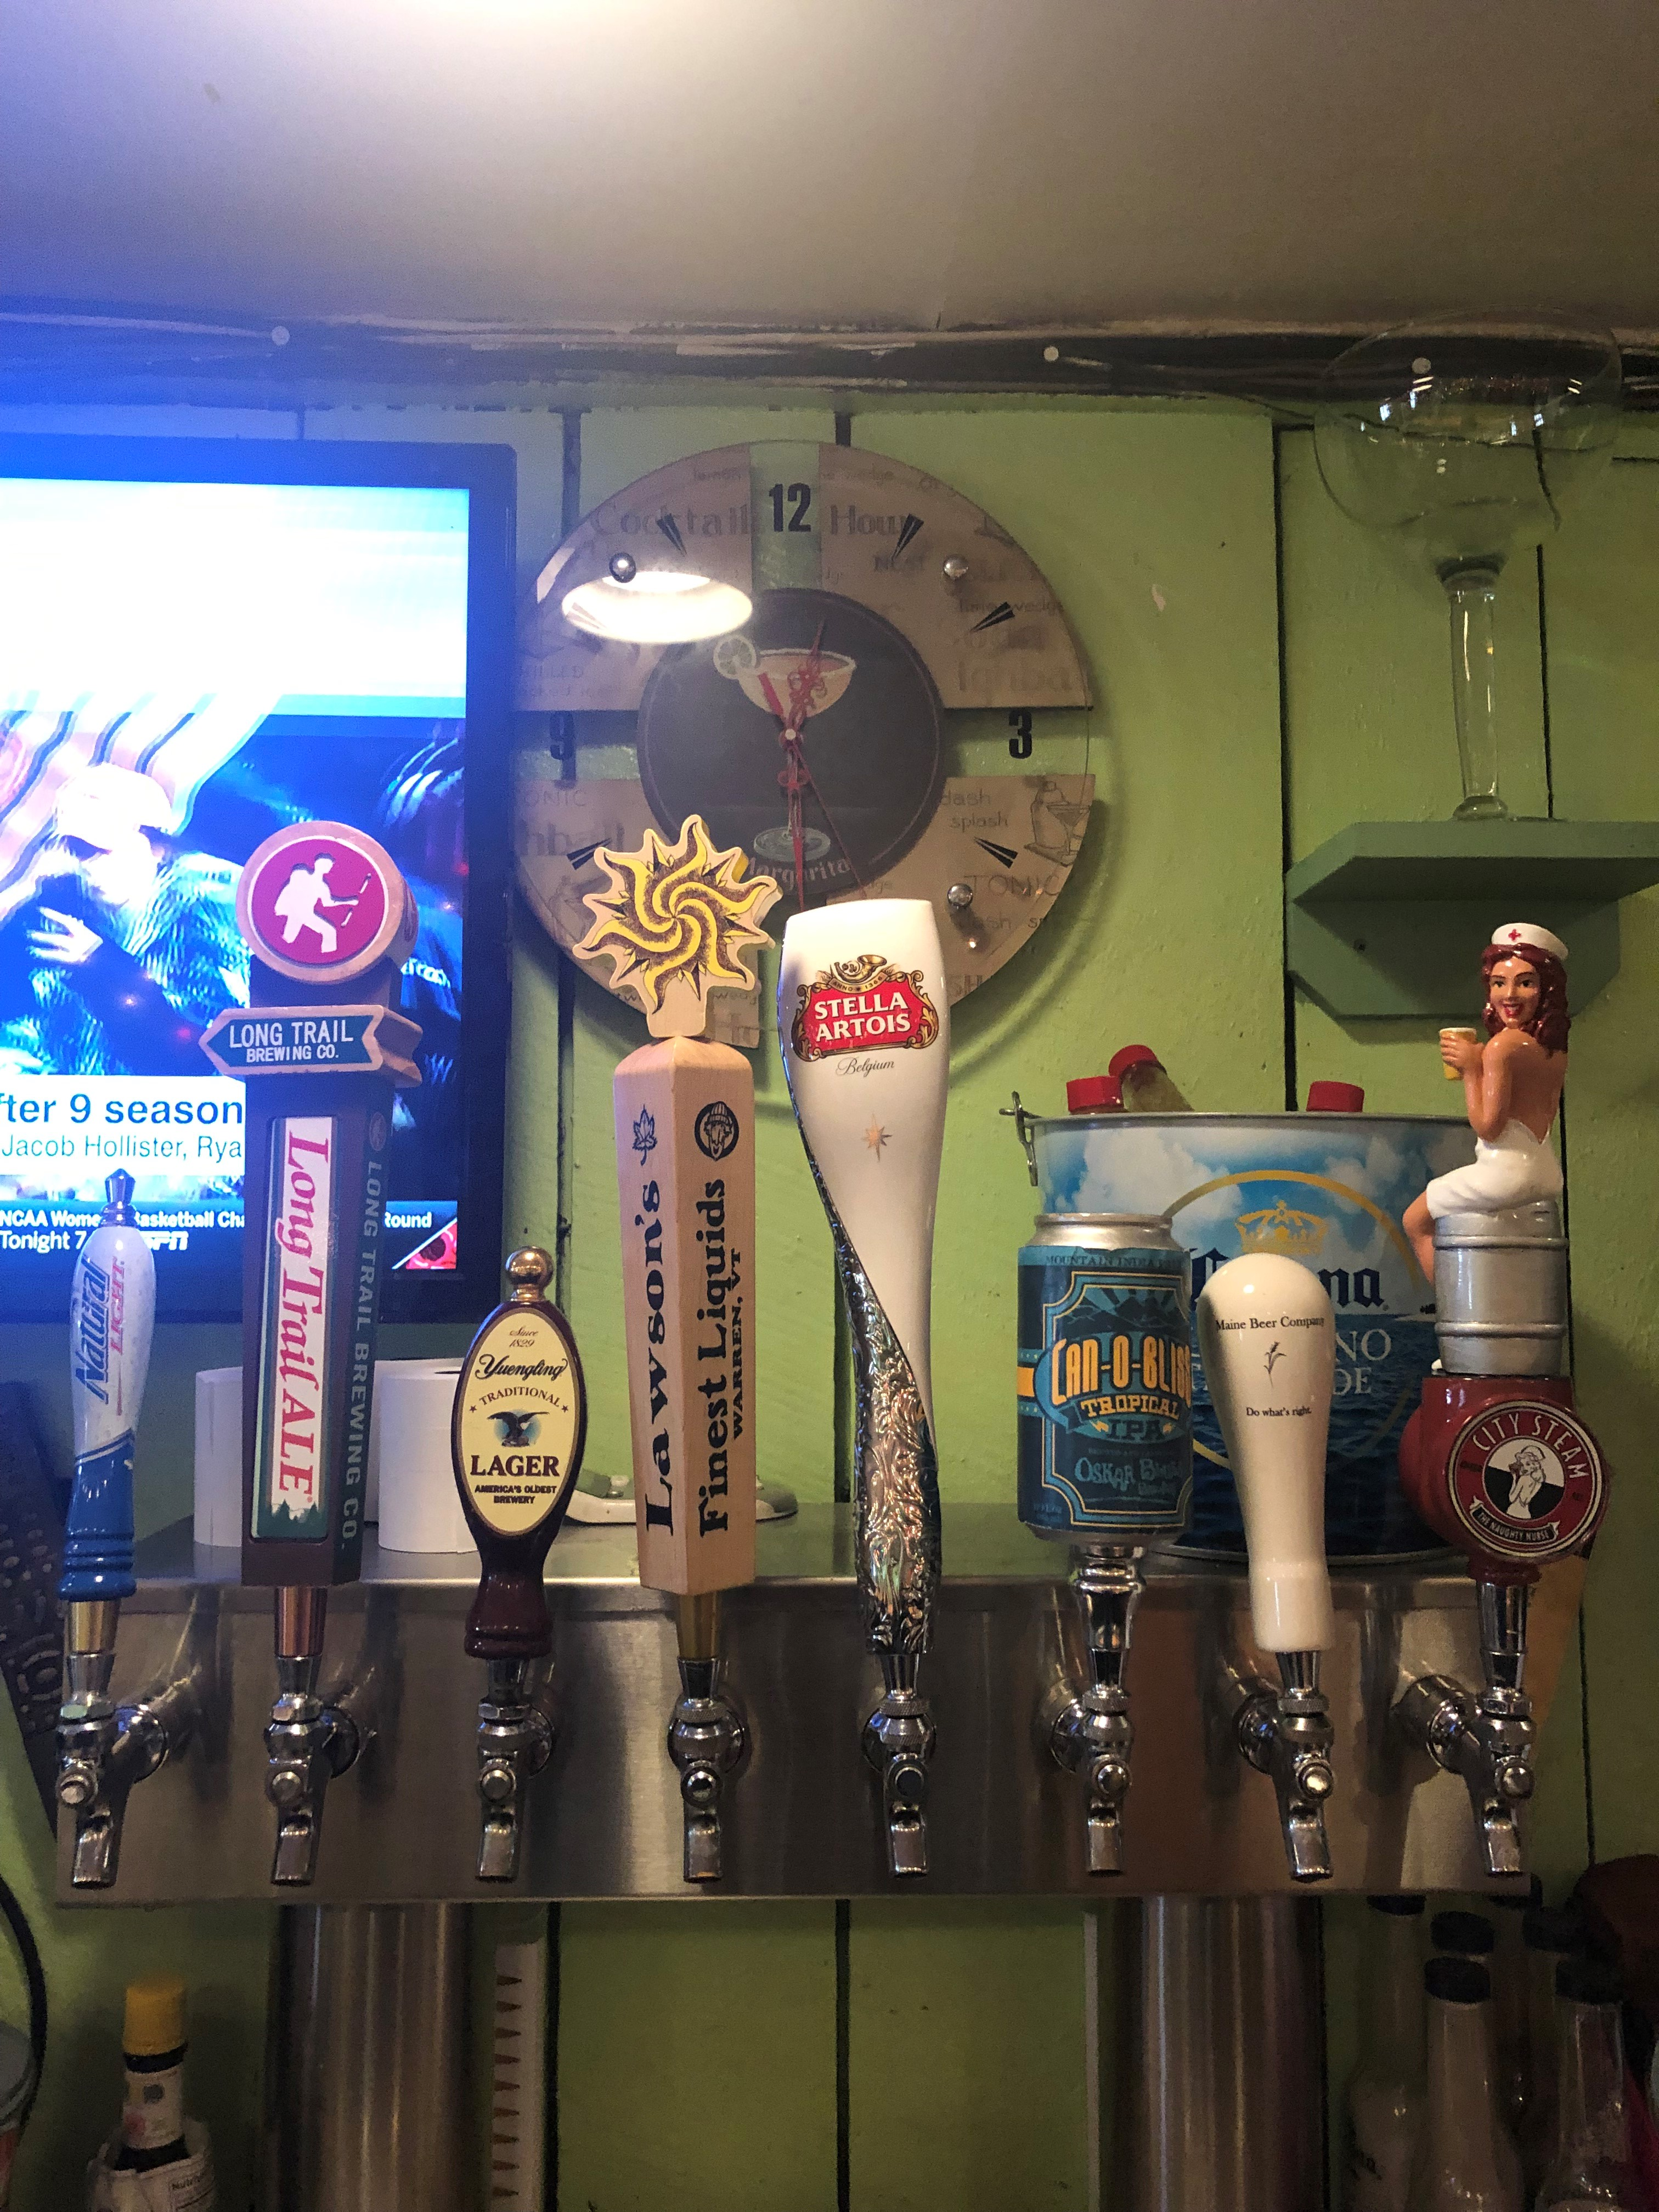 Beer taps against wall with clock and T V set.